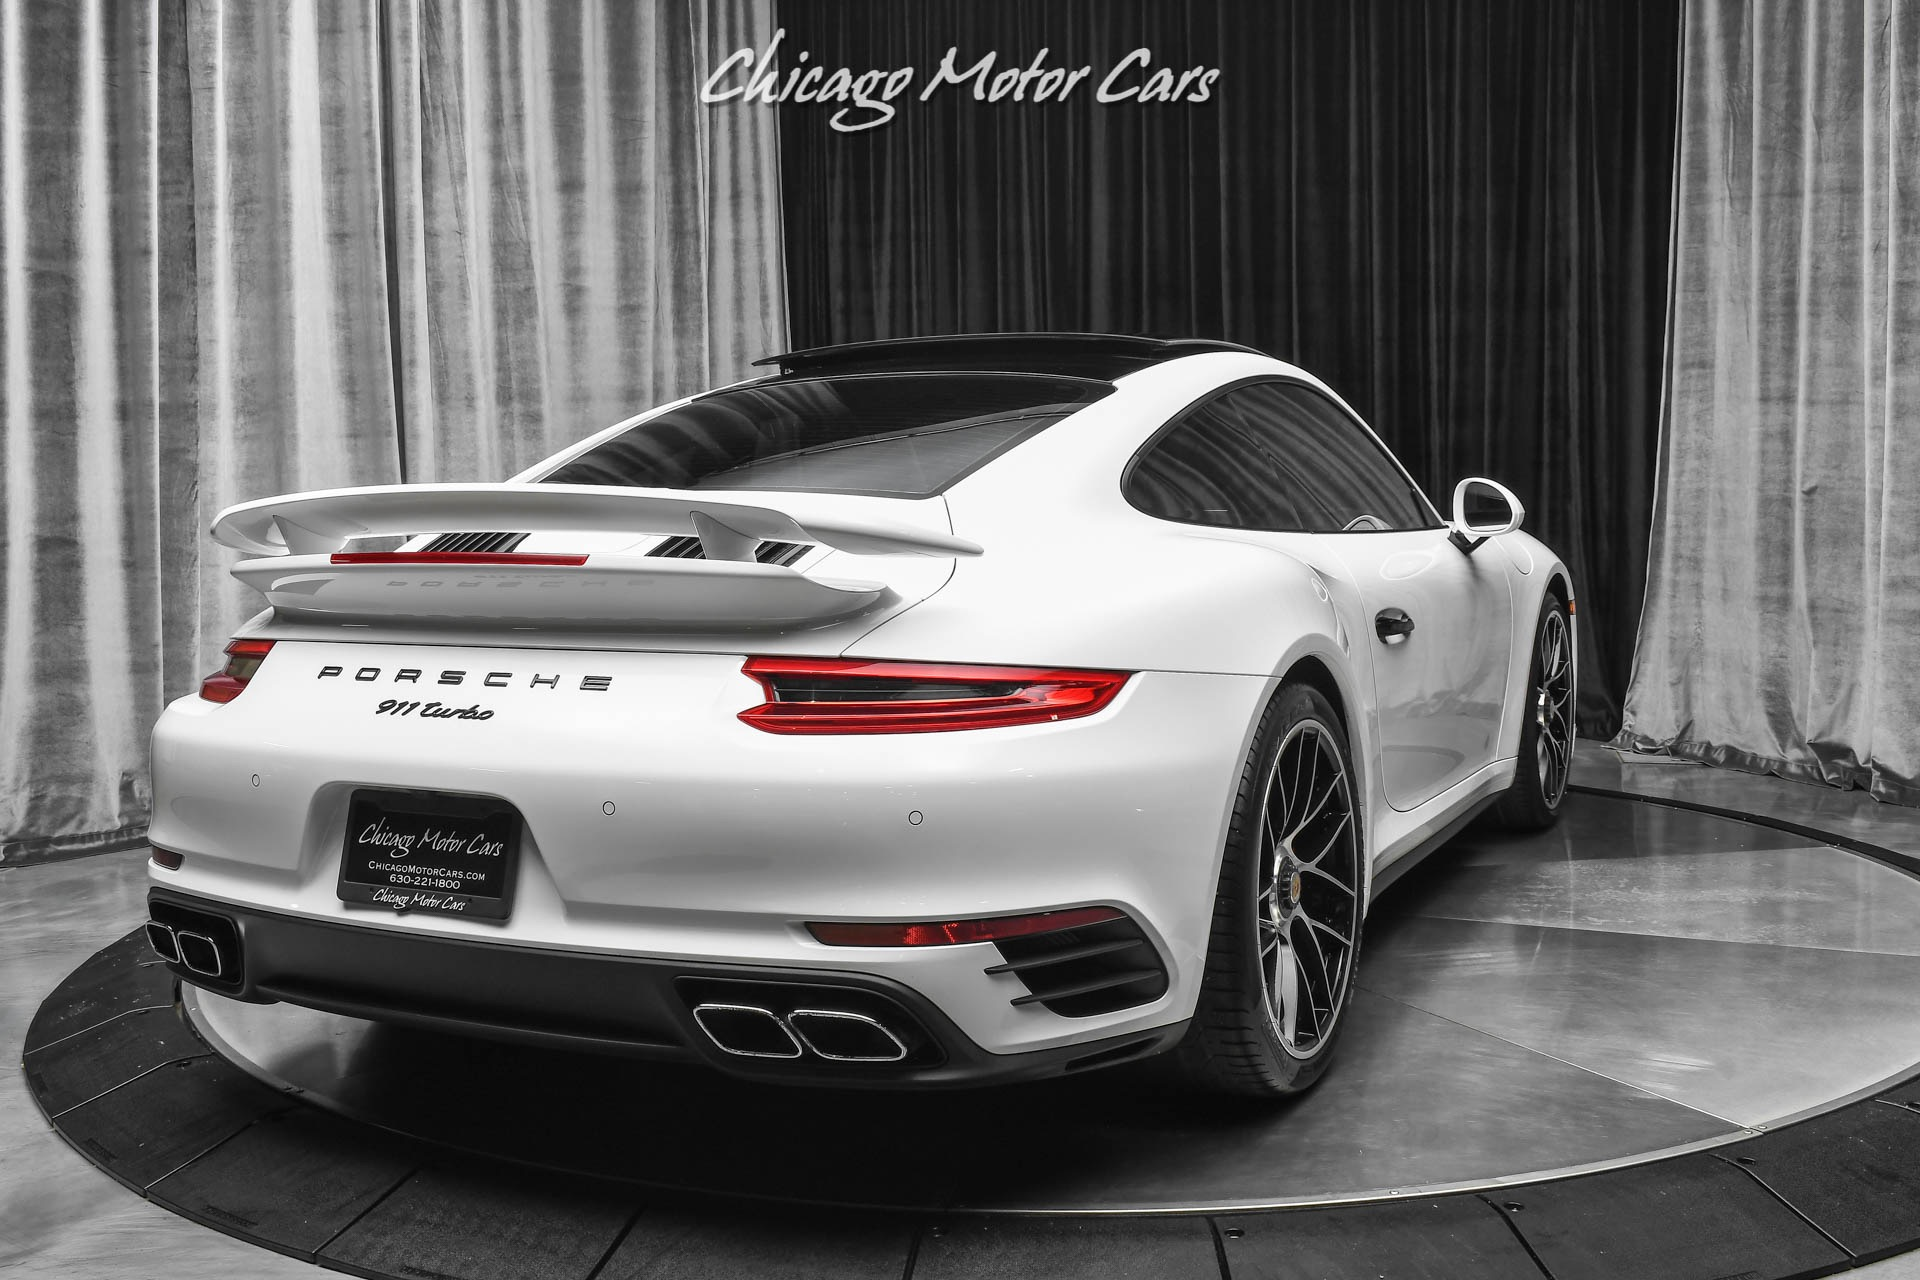 Used-2017-Porsche-911-Turbo-Coupe-ONE-OWNER--20-TURBO-S-WHEELS